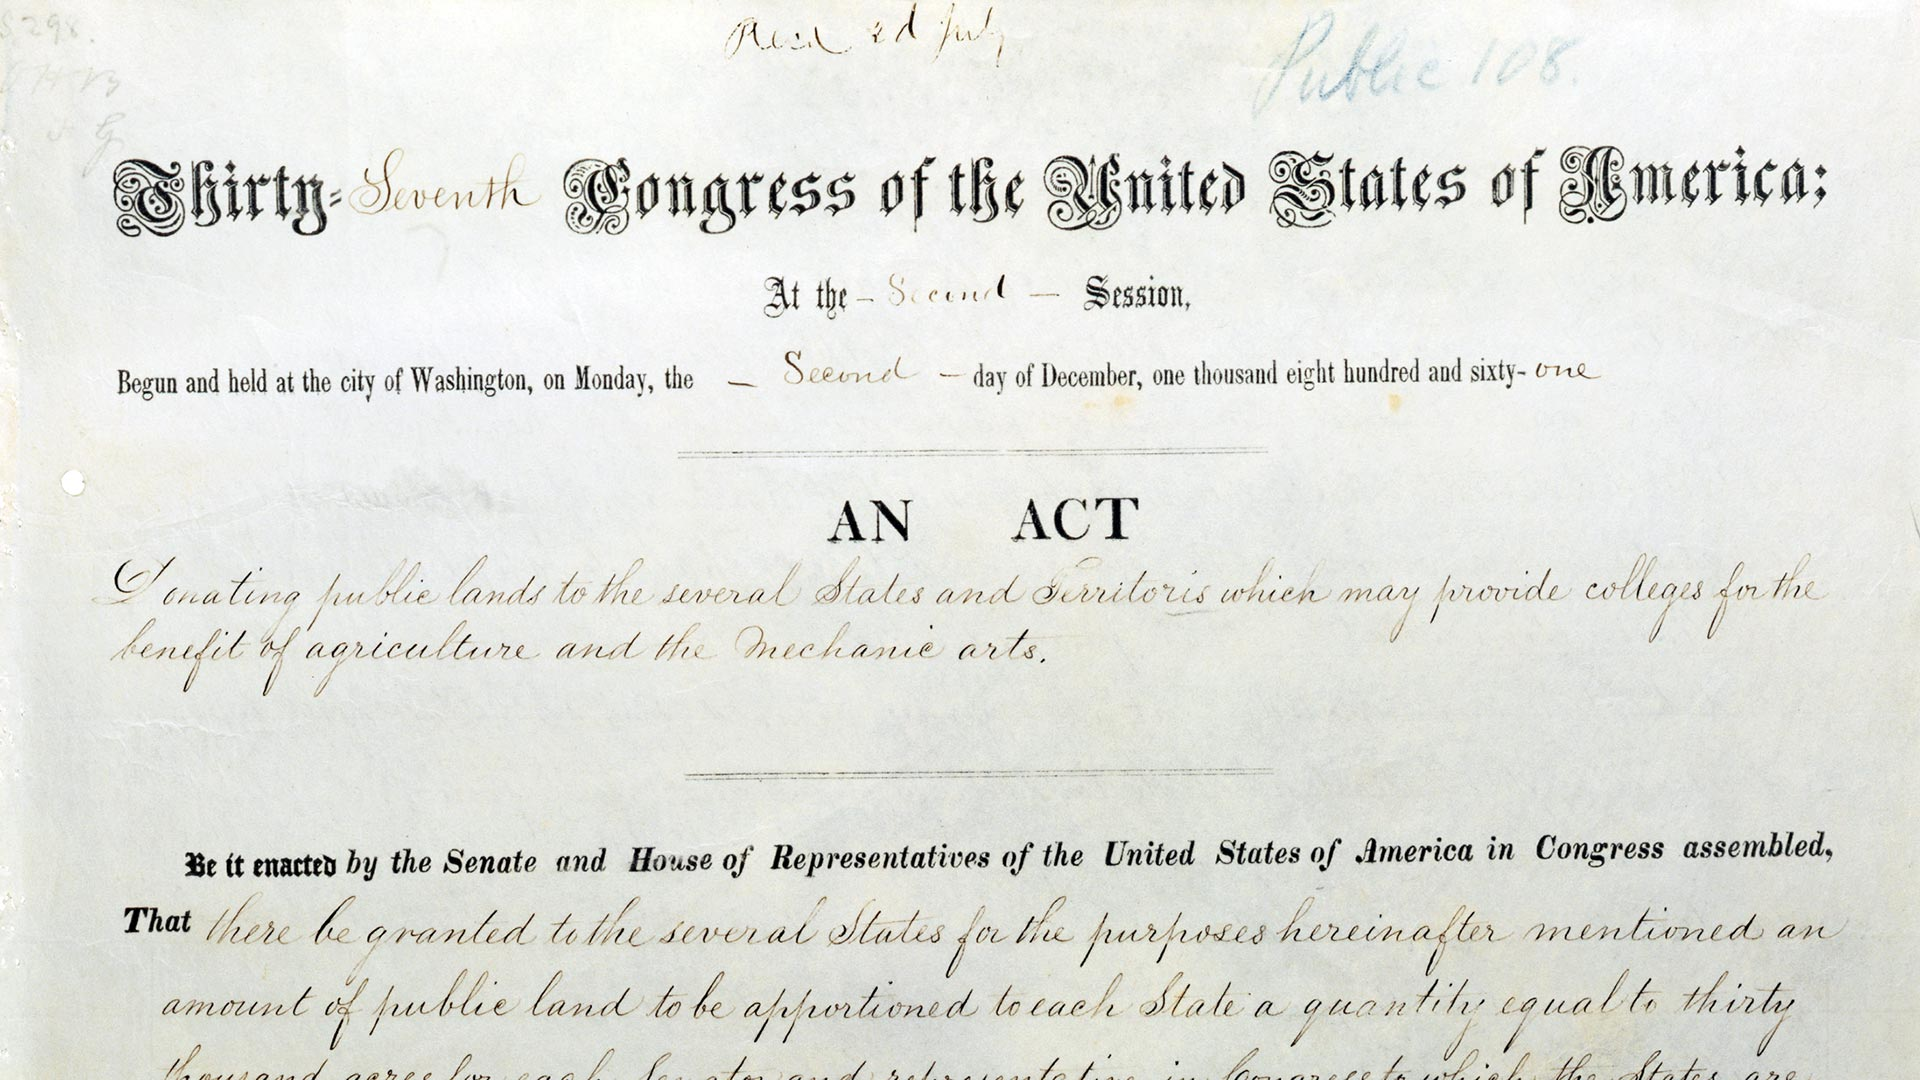 UI150: The Morrill Land Grant Act overview image